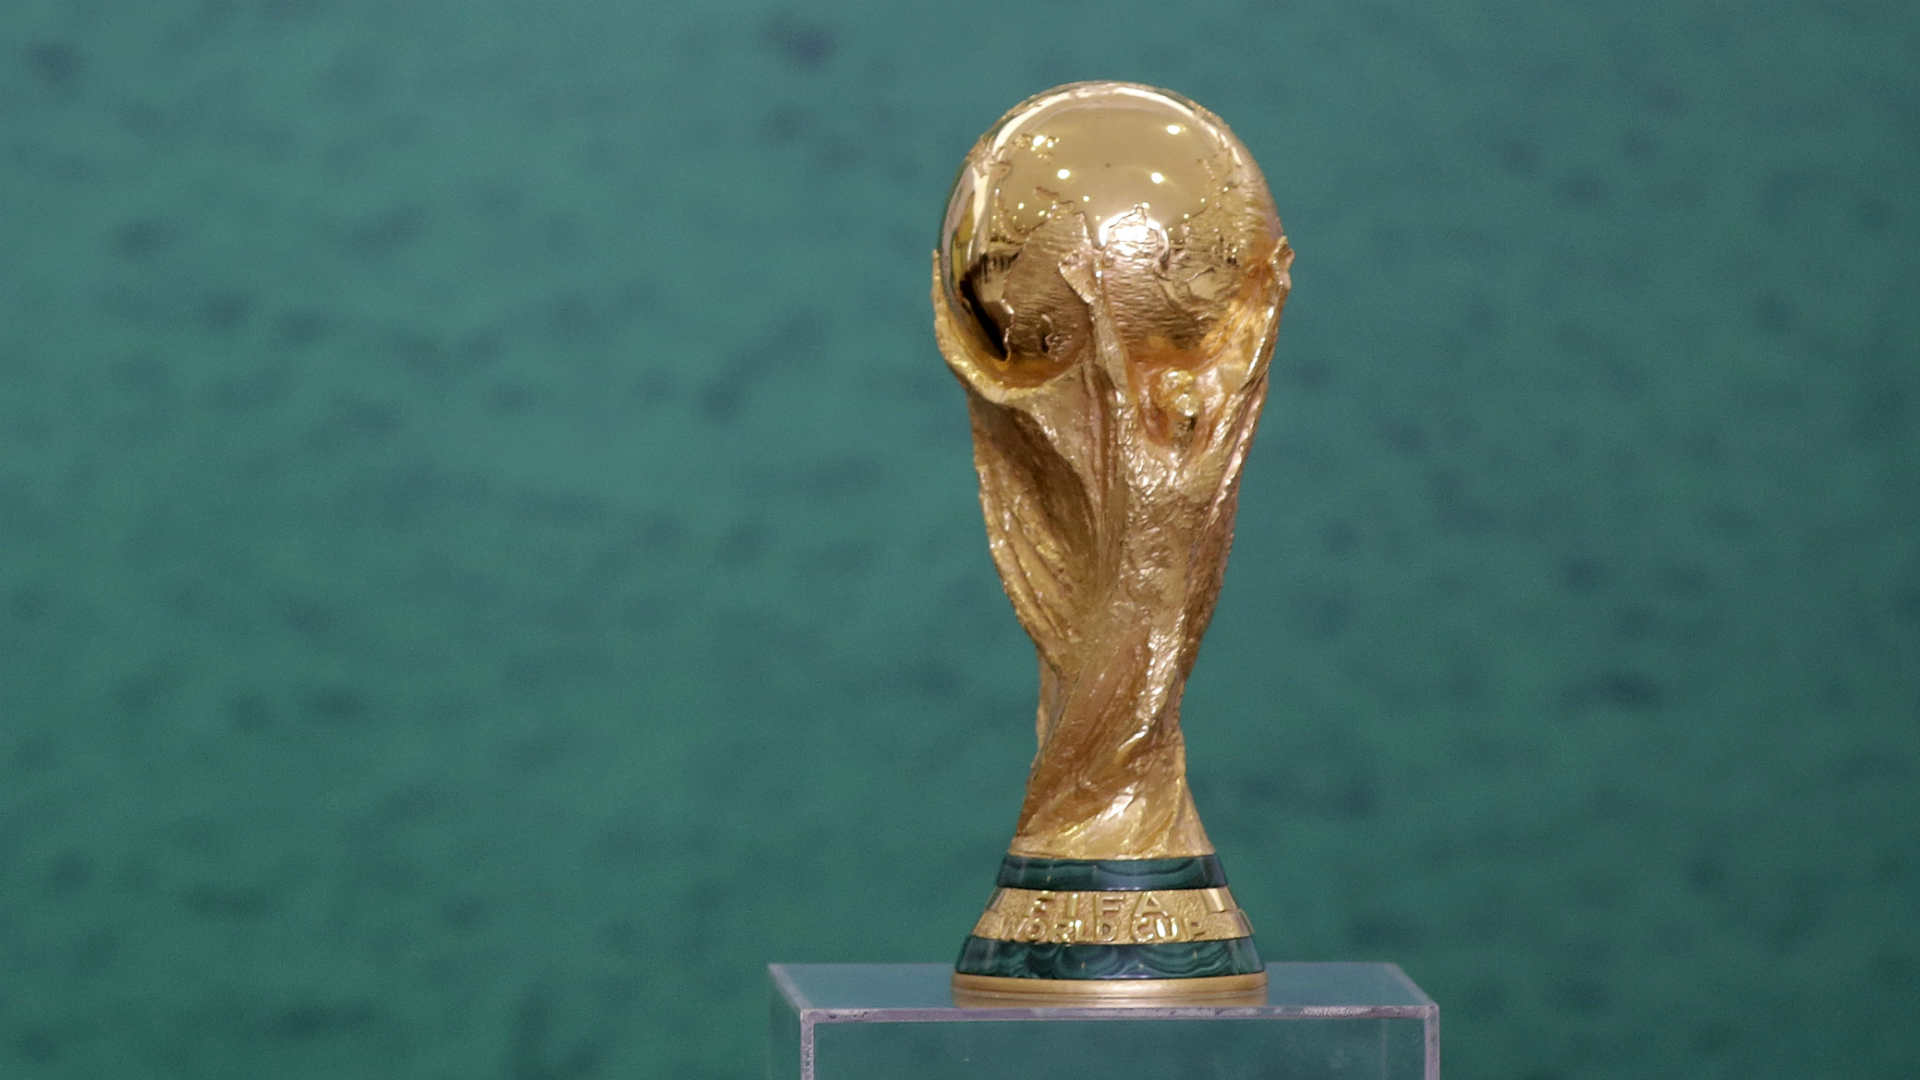 World Cup trophy-061714-AP-FTR.jpg